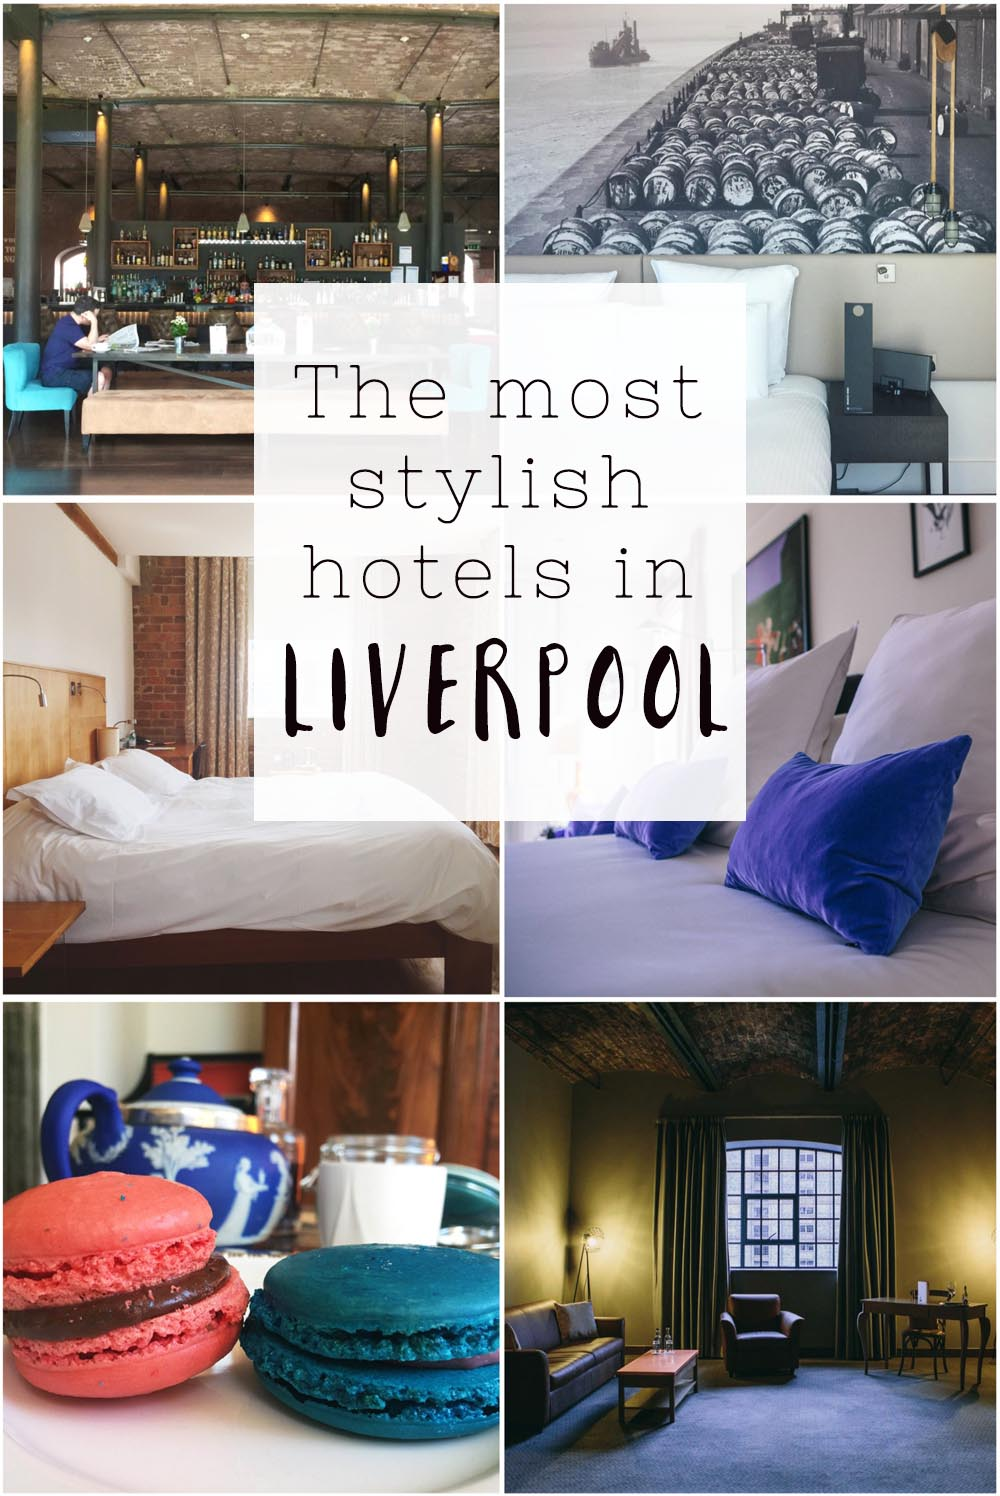 The most stylish and best hotels in Liverpool